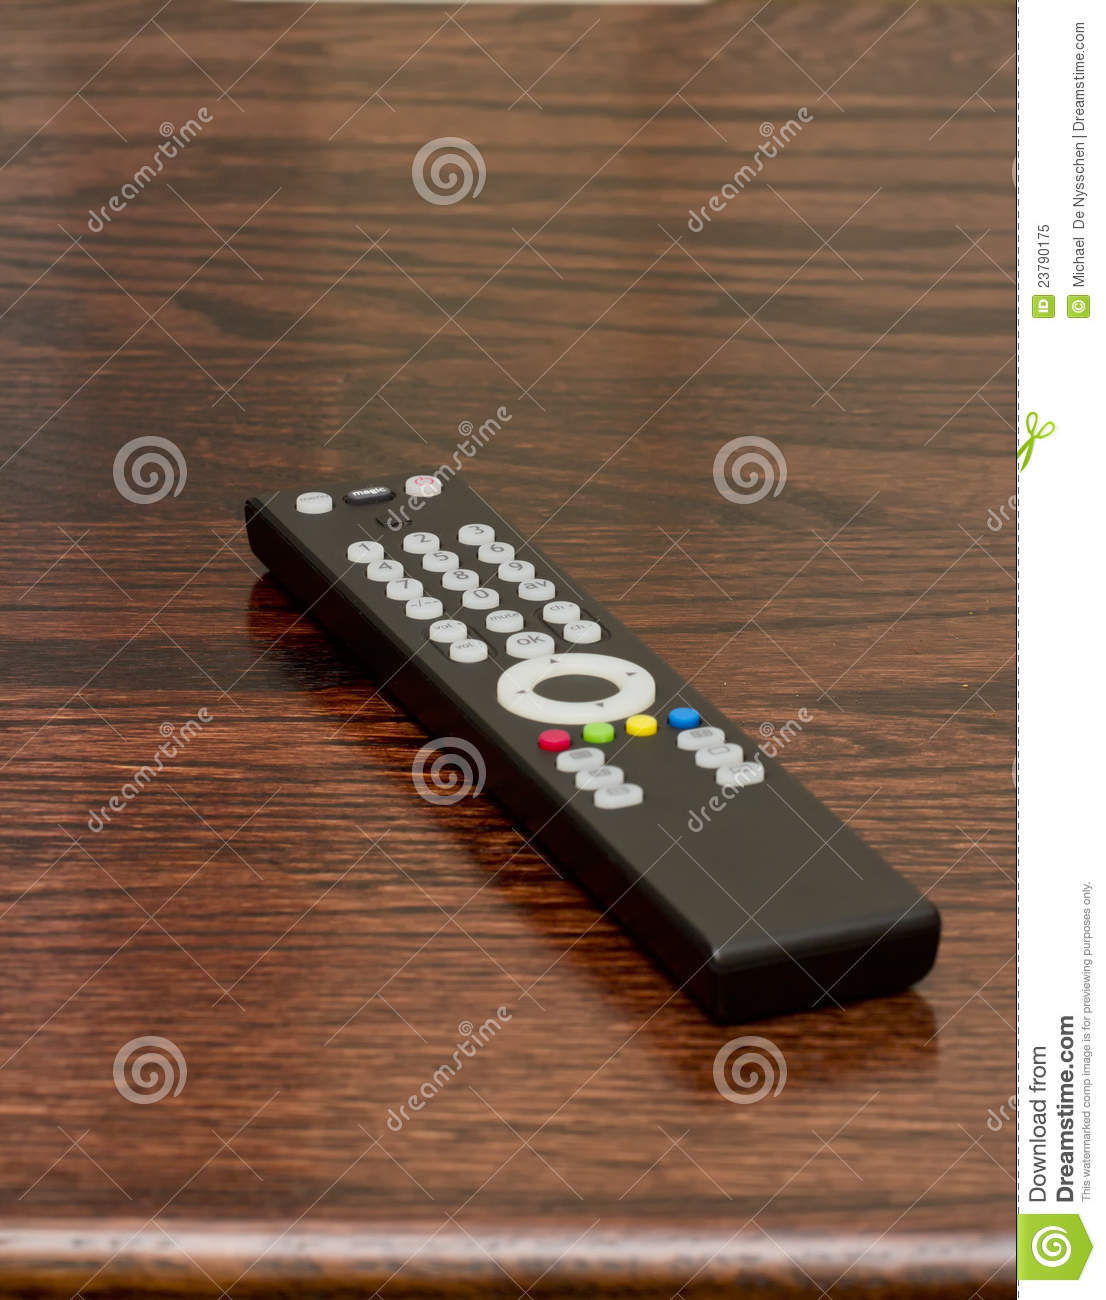 TV Or Television Remote On Table Stock Image - Image of